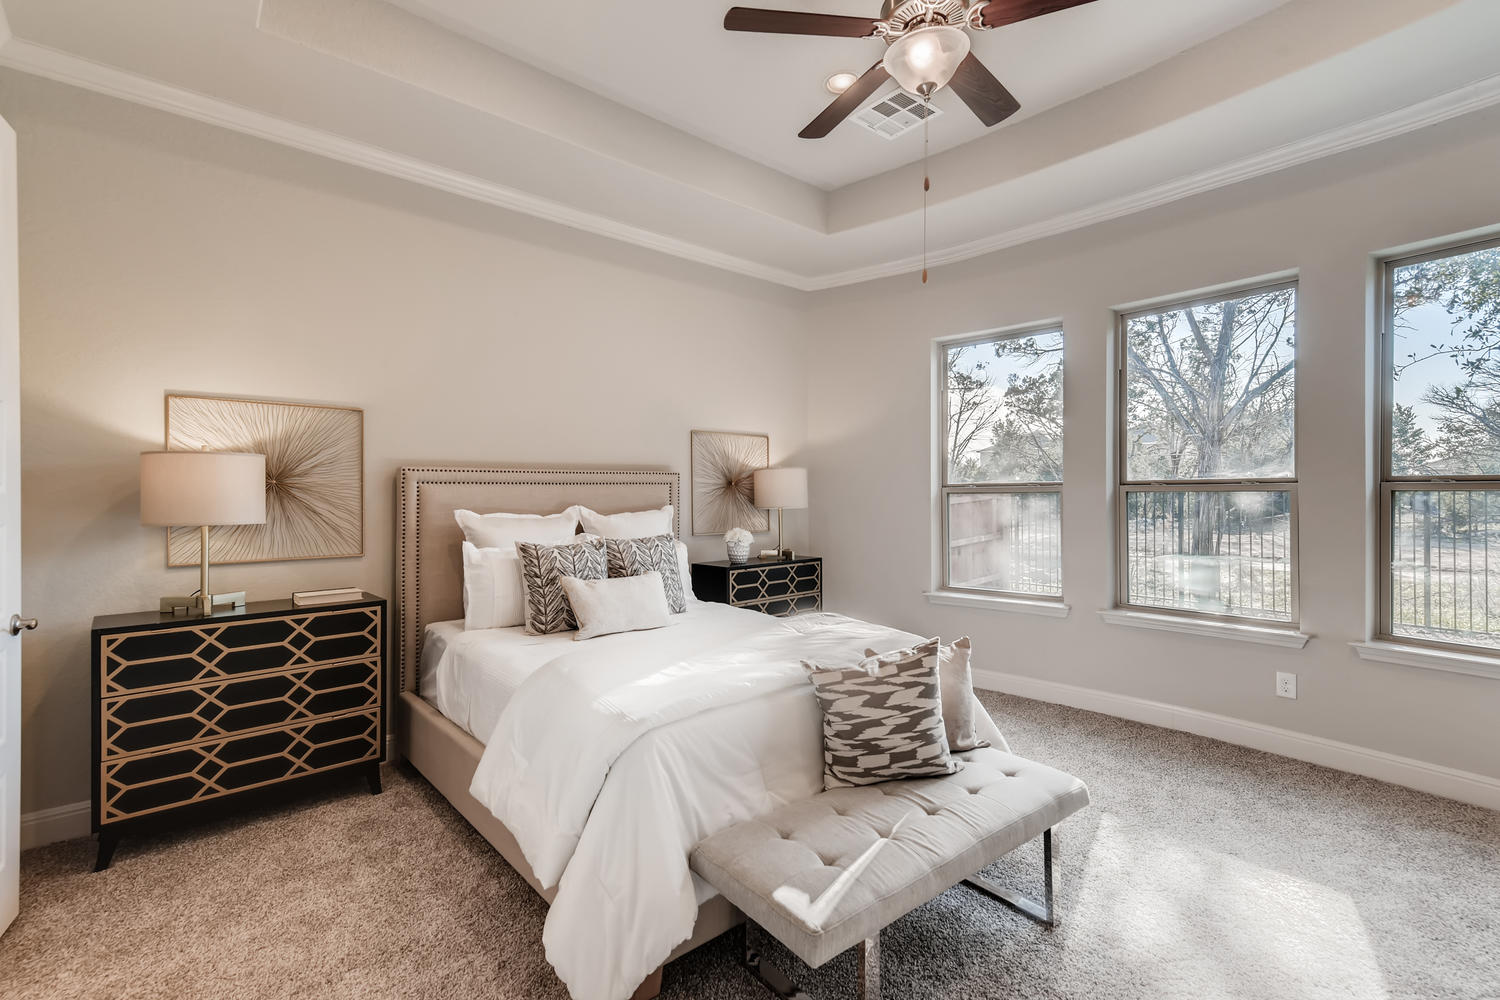 Full home staging in Las Vegas, Nevada, featuring a staged master bedroom